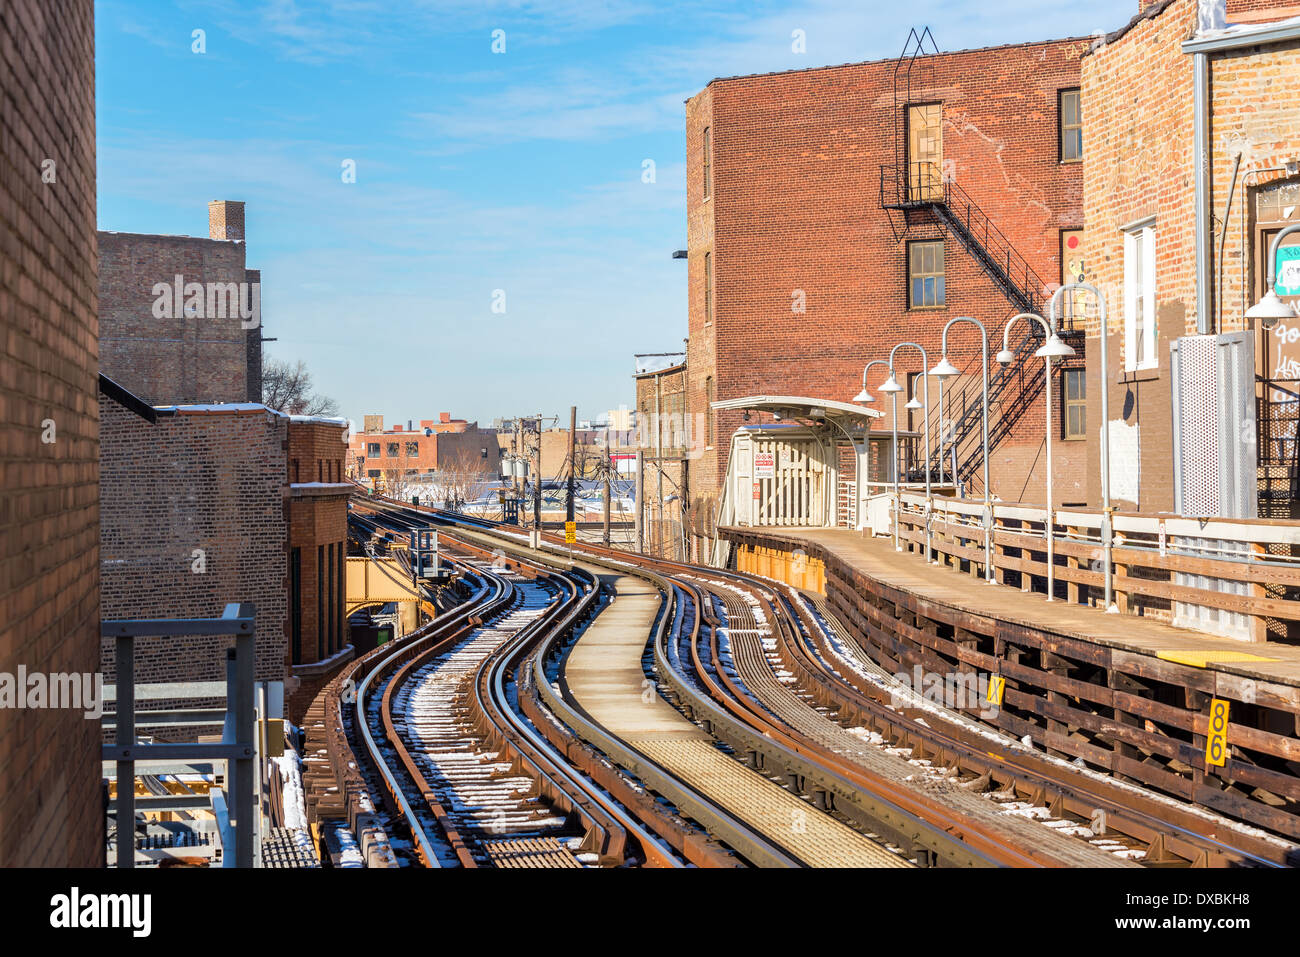 Tracks for the elevated train mass transit system in Chicago - Stock Image